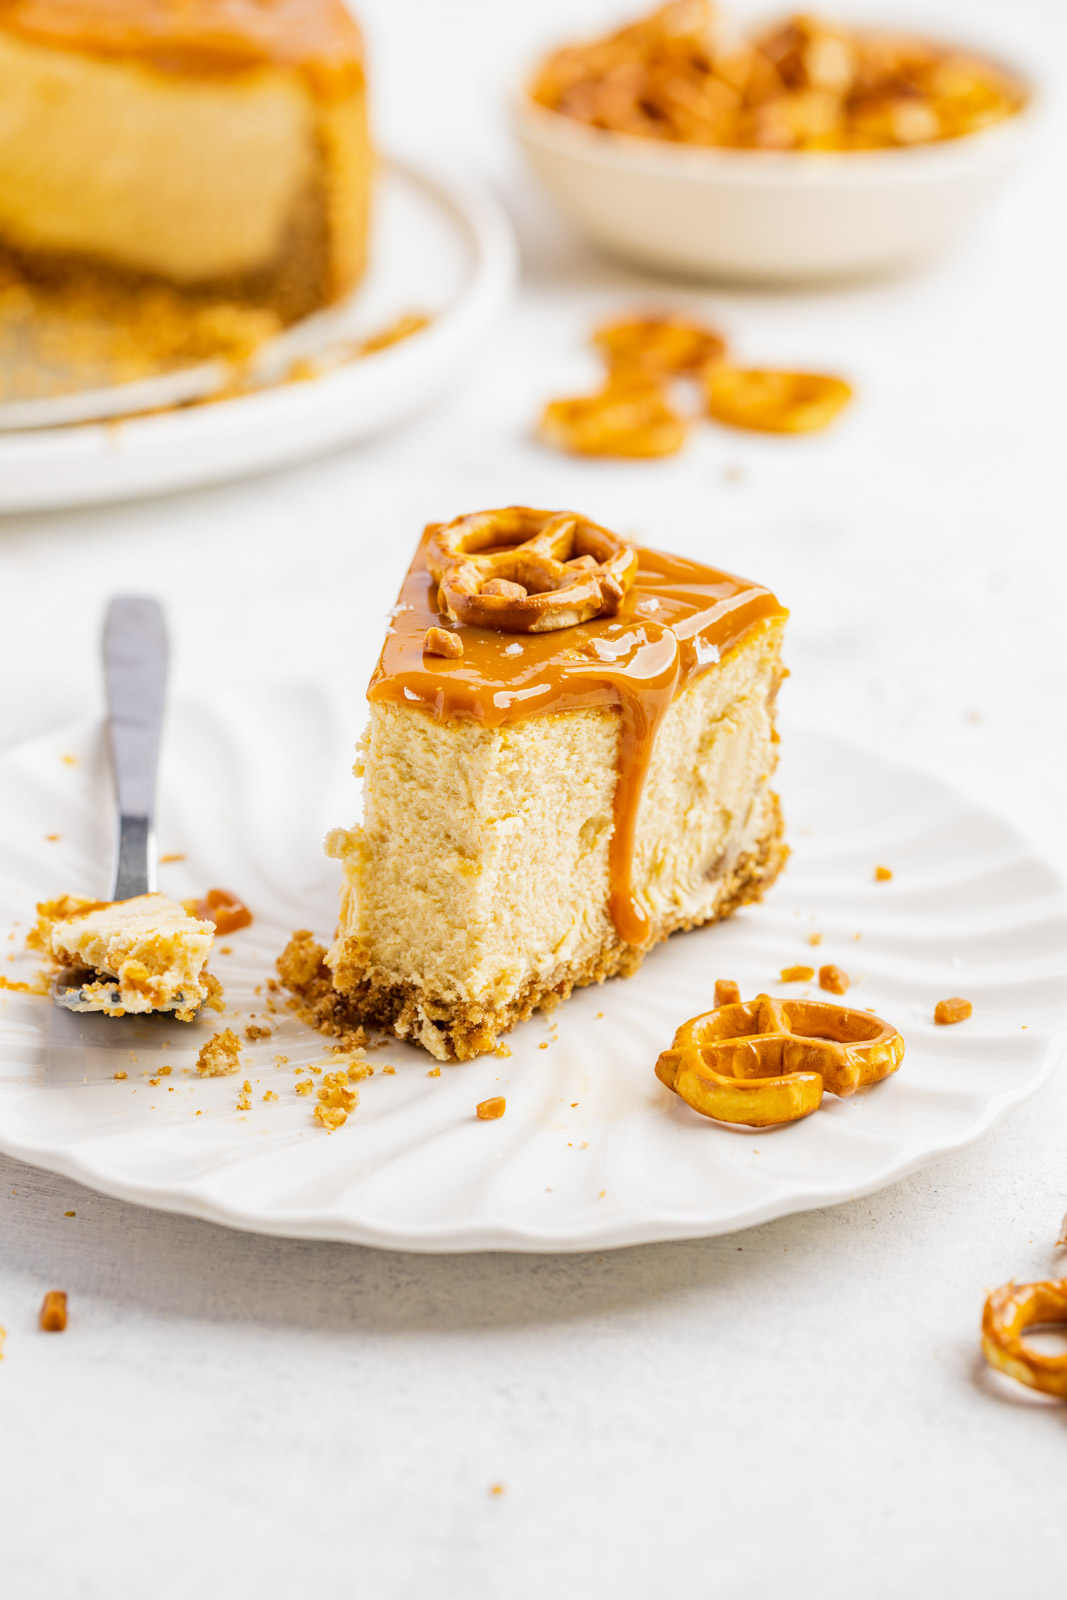 Caramel Cheesecake With a Pretzel Crust